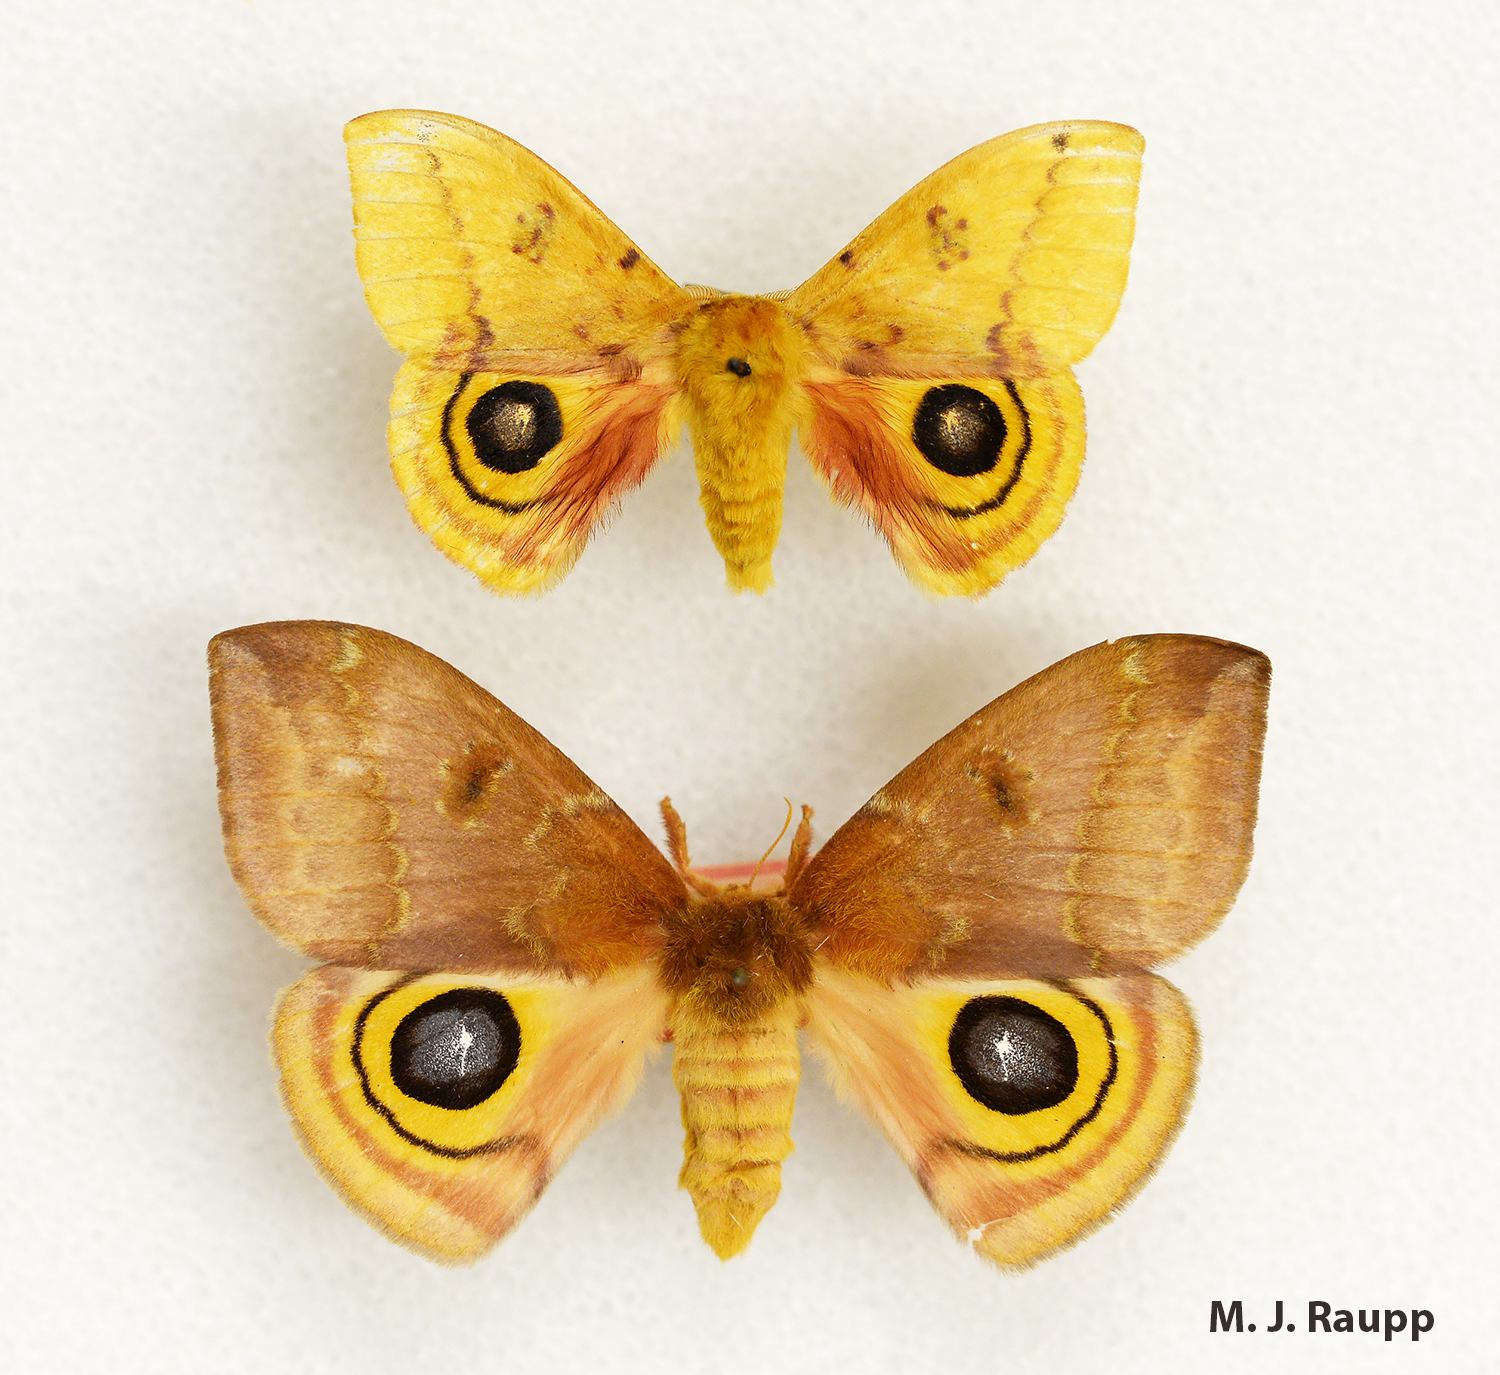 False eyespots on the hind wing may help beautiful male (top) and female (bottom) Io moths gain protection from hungry predators.